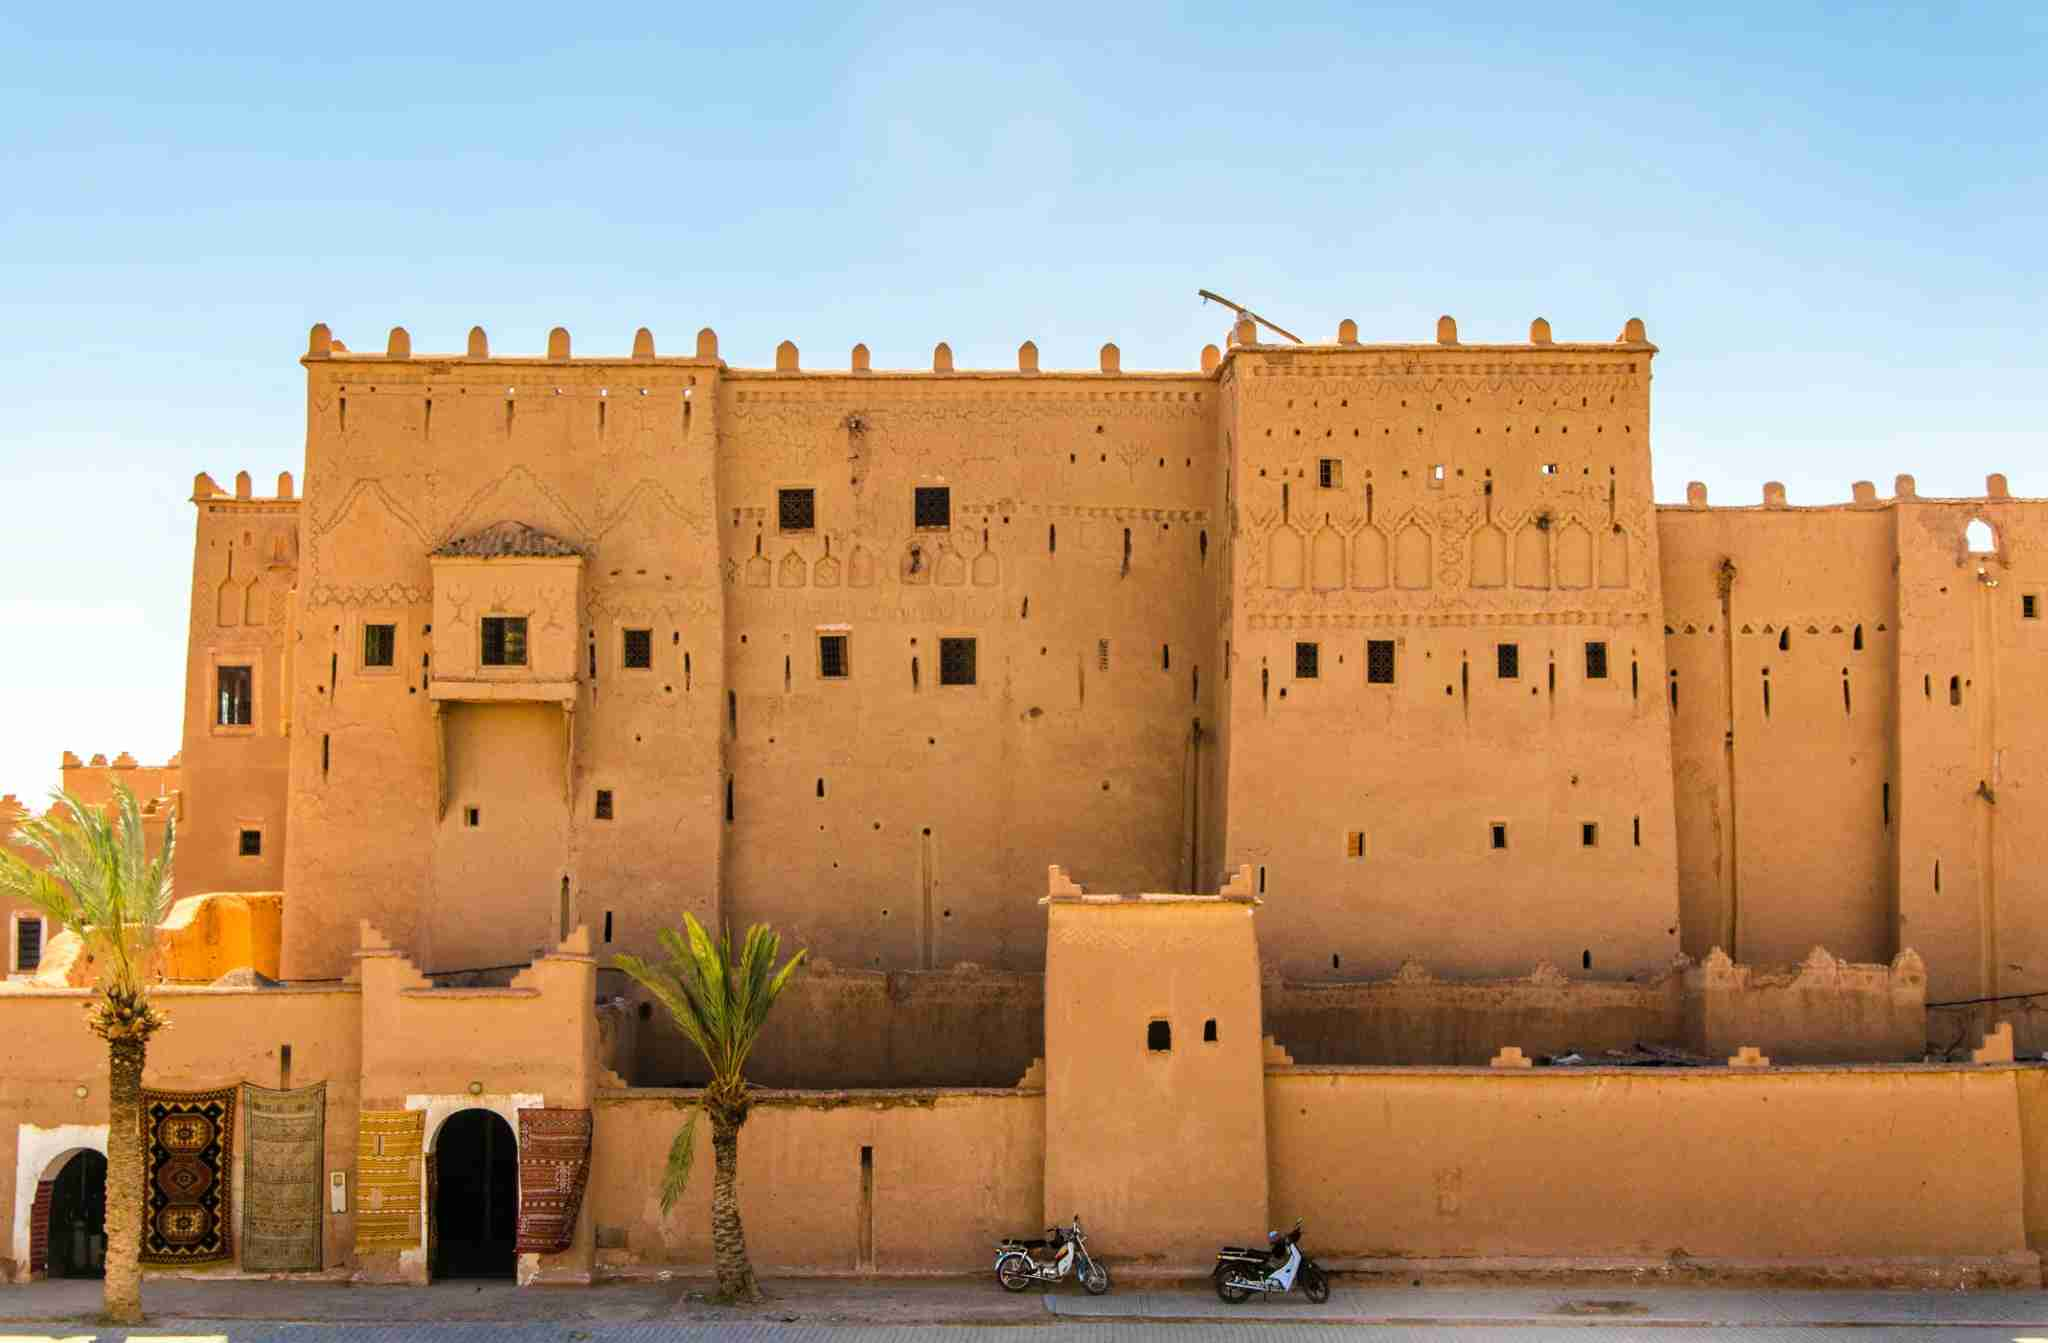 Kasbahs were built to protect the families living inside them. Image courtesy of Federica Gentile via Getty Images.